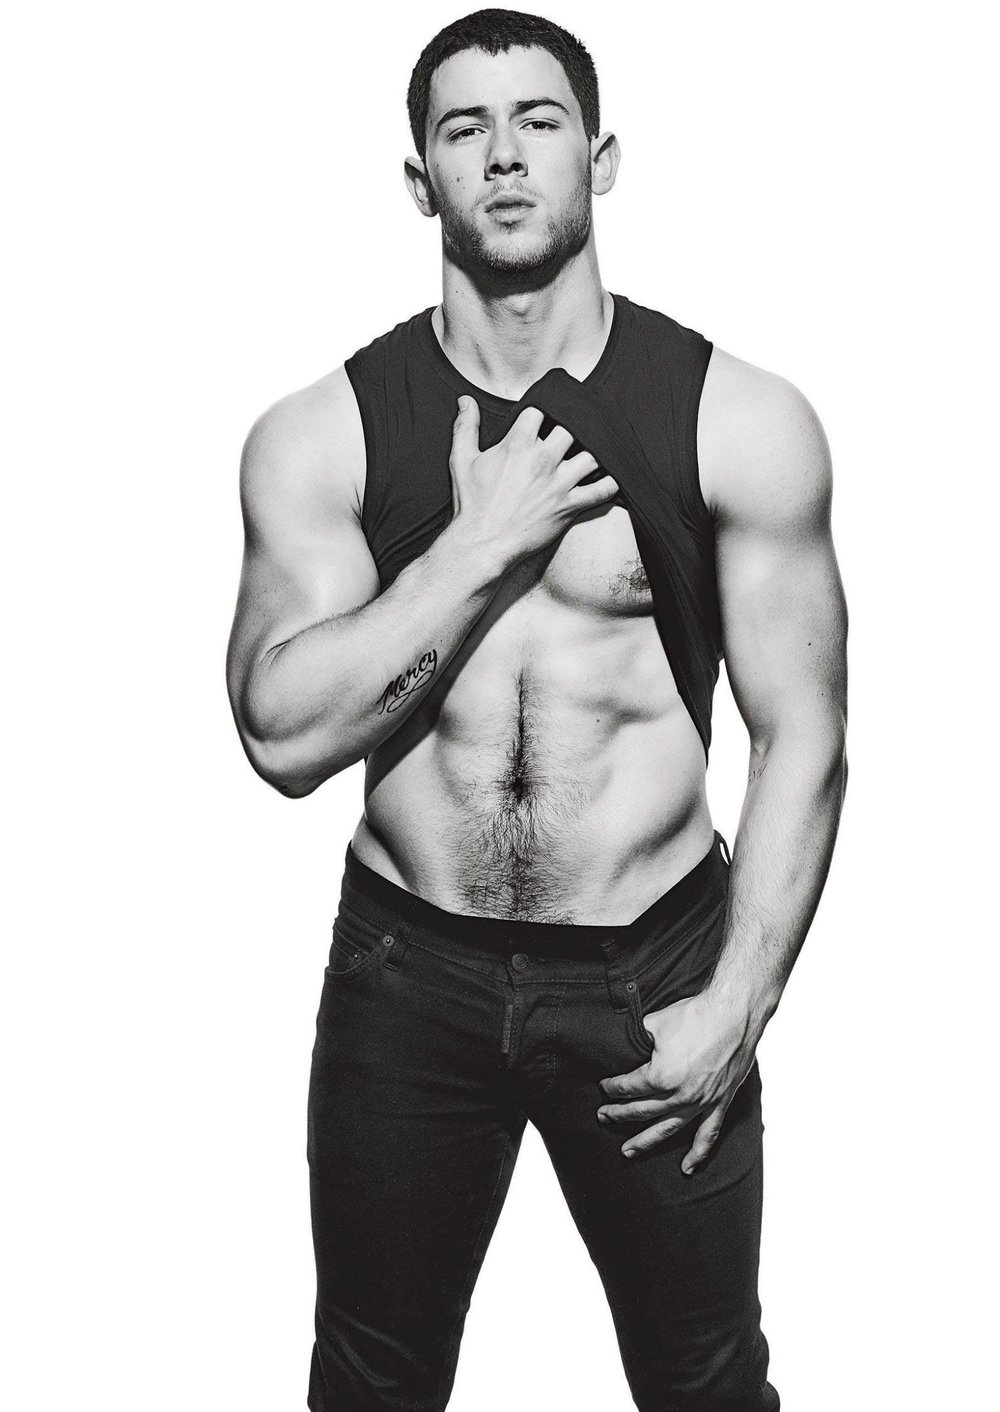 MENS-FITNESS-Nick-Jonas-by-Peter-Yang.-December-2016-www.imageamplified.com-Image-Amplified6_thu.jpg